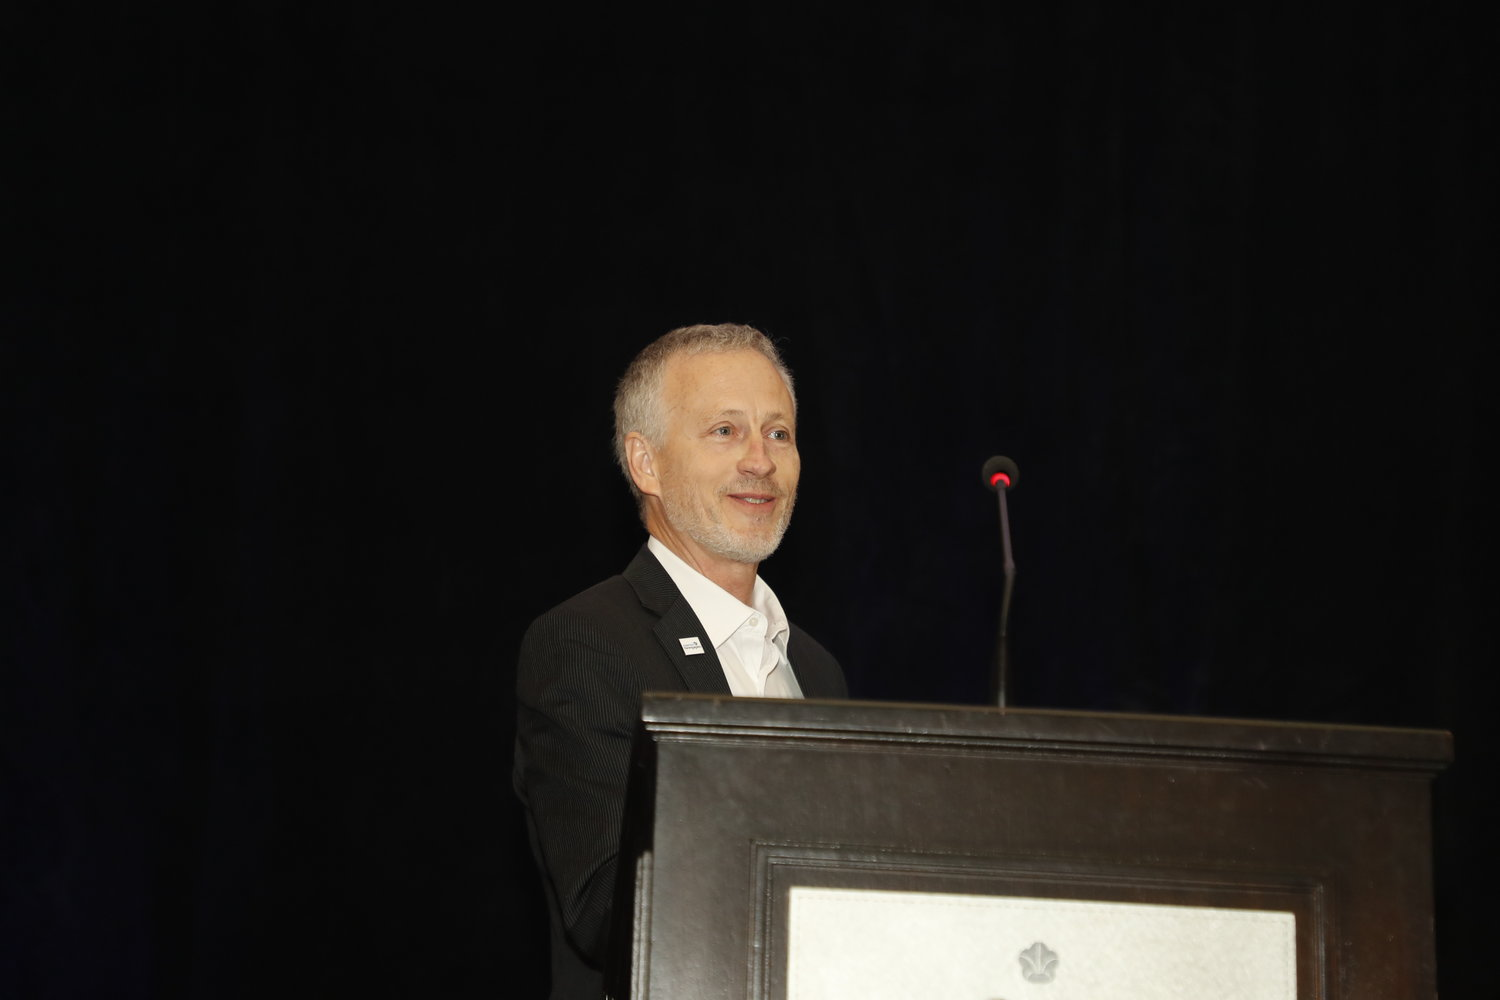 Dean Ridings, CEO of America's Newspapers, at the 2020 Mega-Conference. (Photo by Bob Booth)